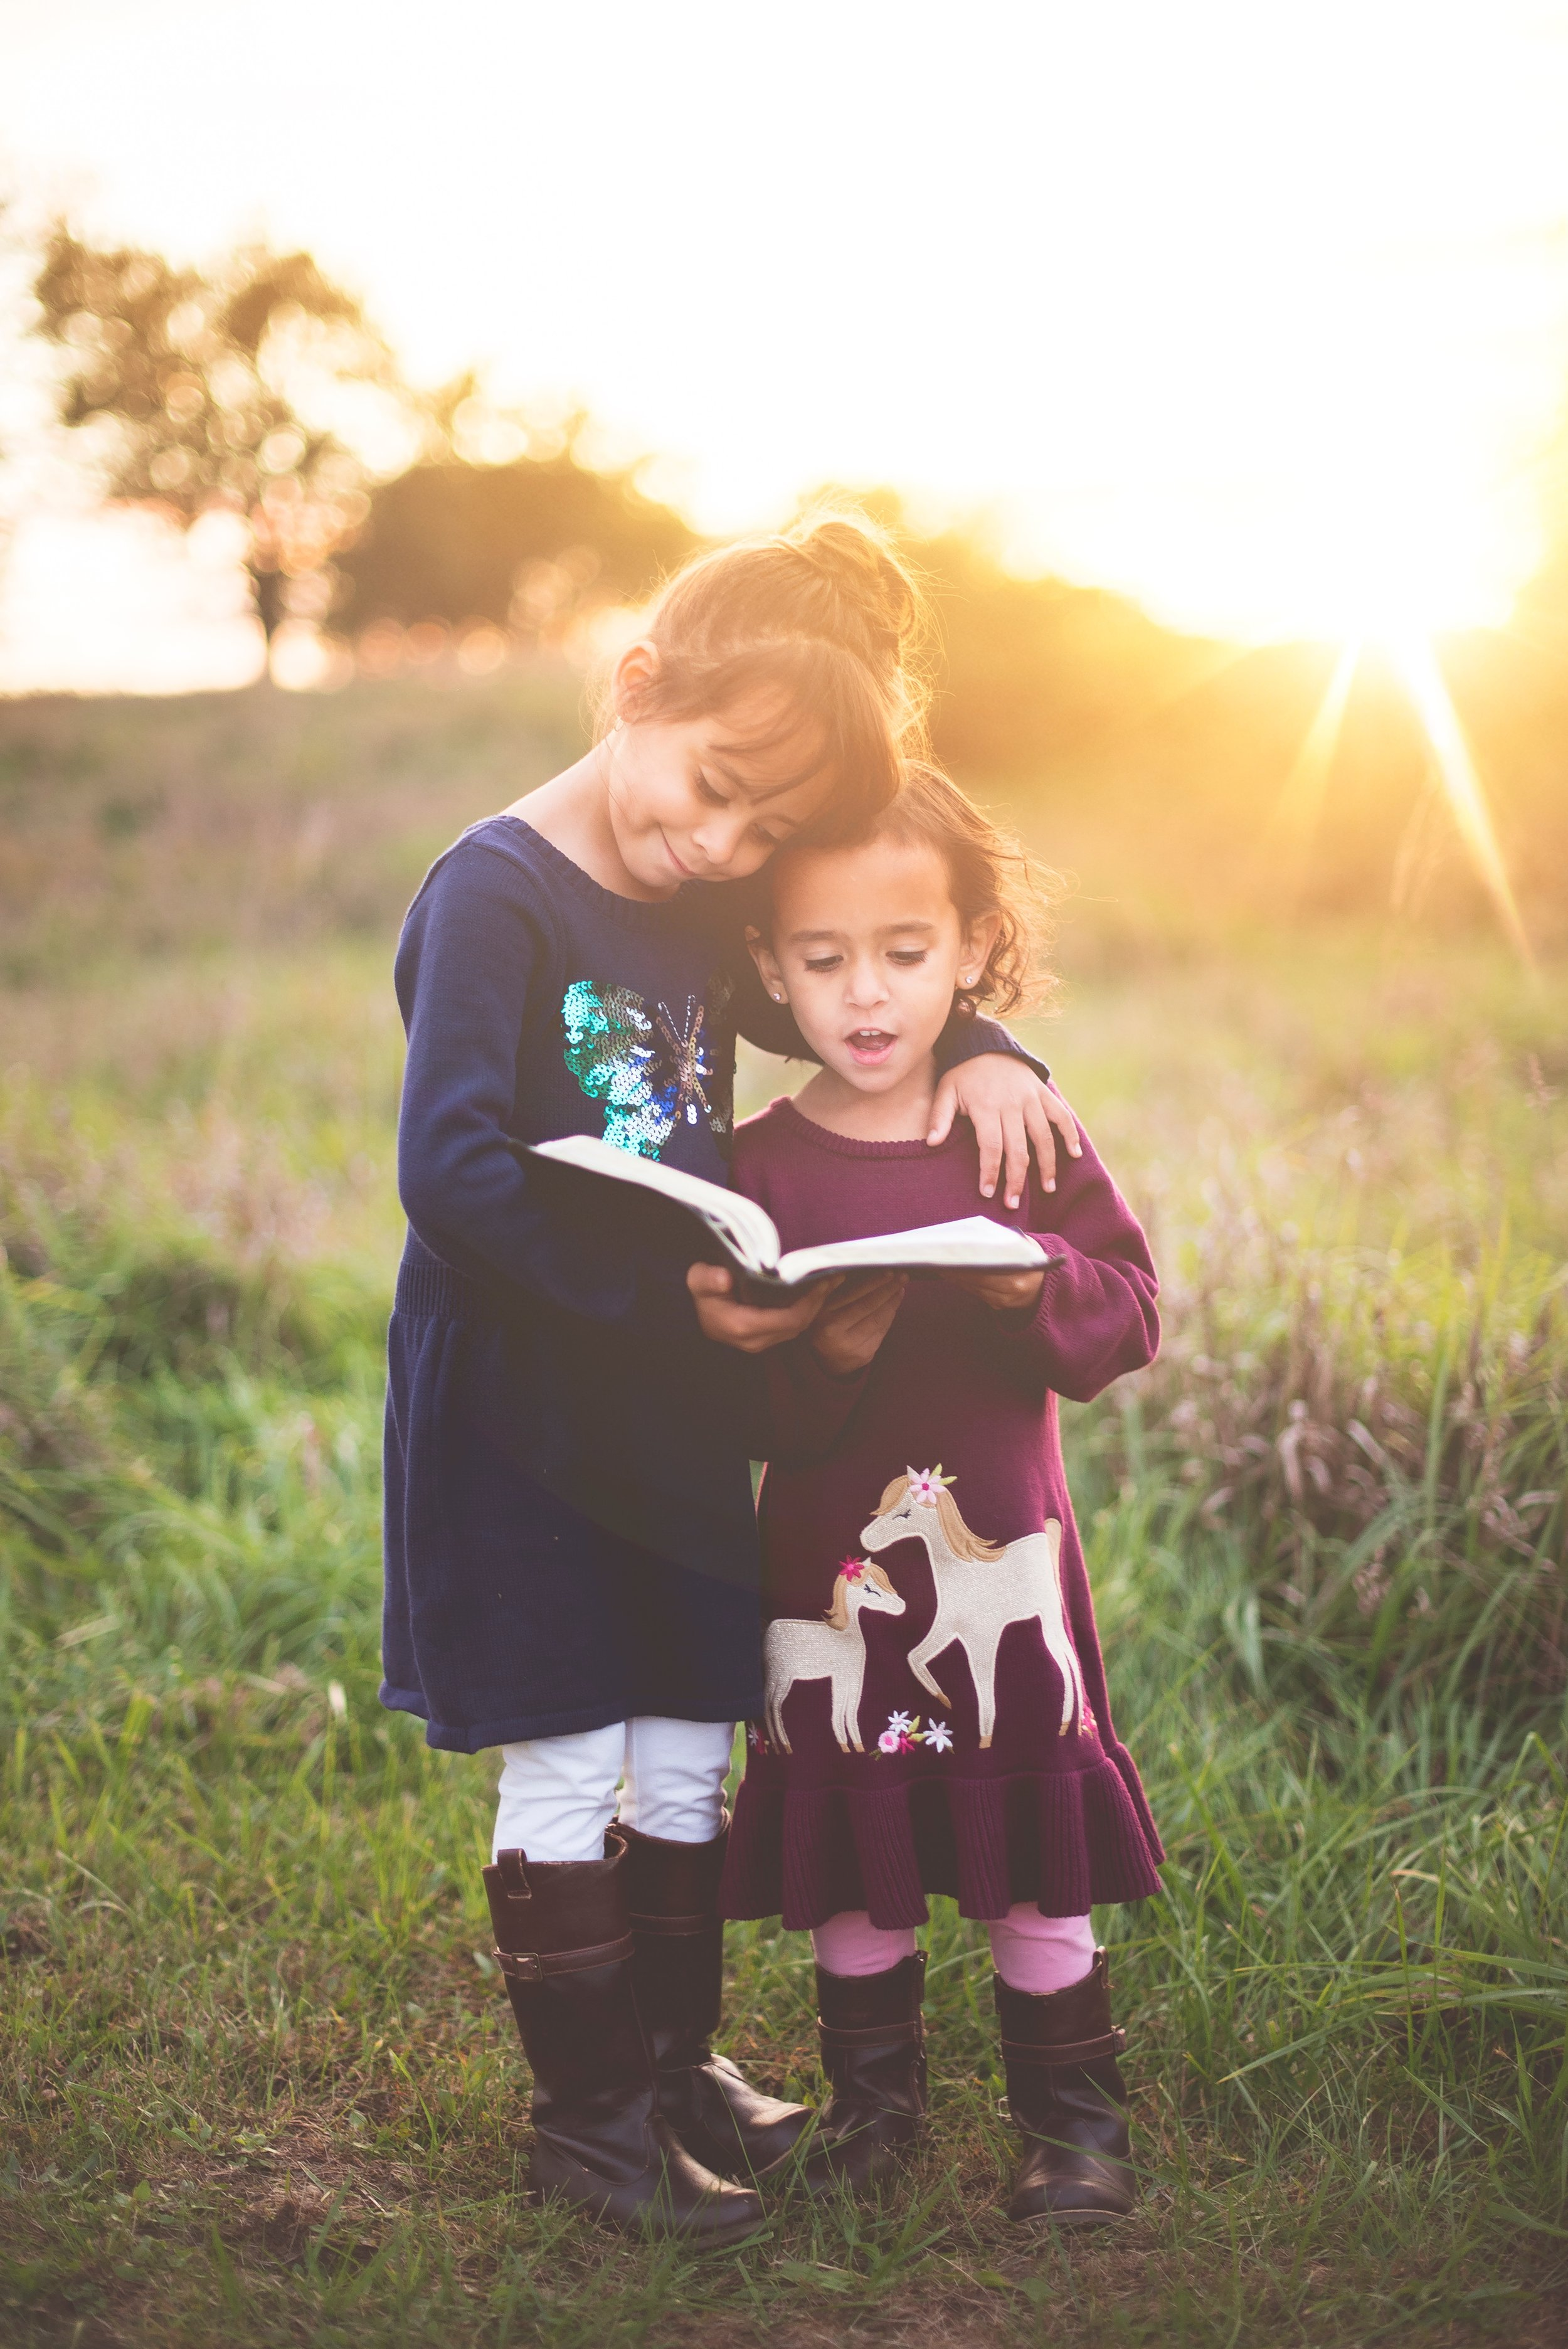 Recapture the joy of learning as a kid. -Photo by  Ben White on  Unsplash